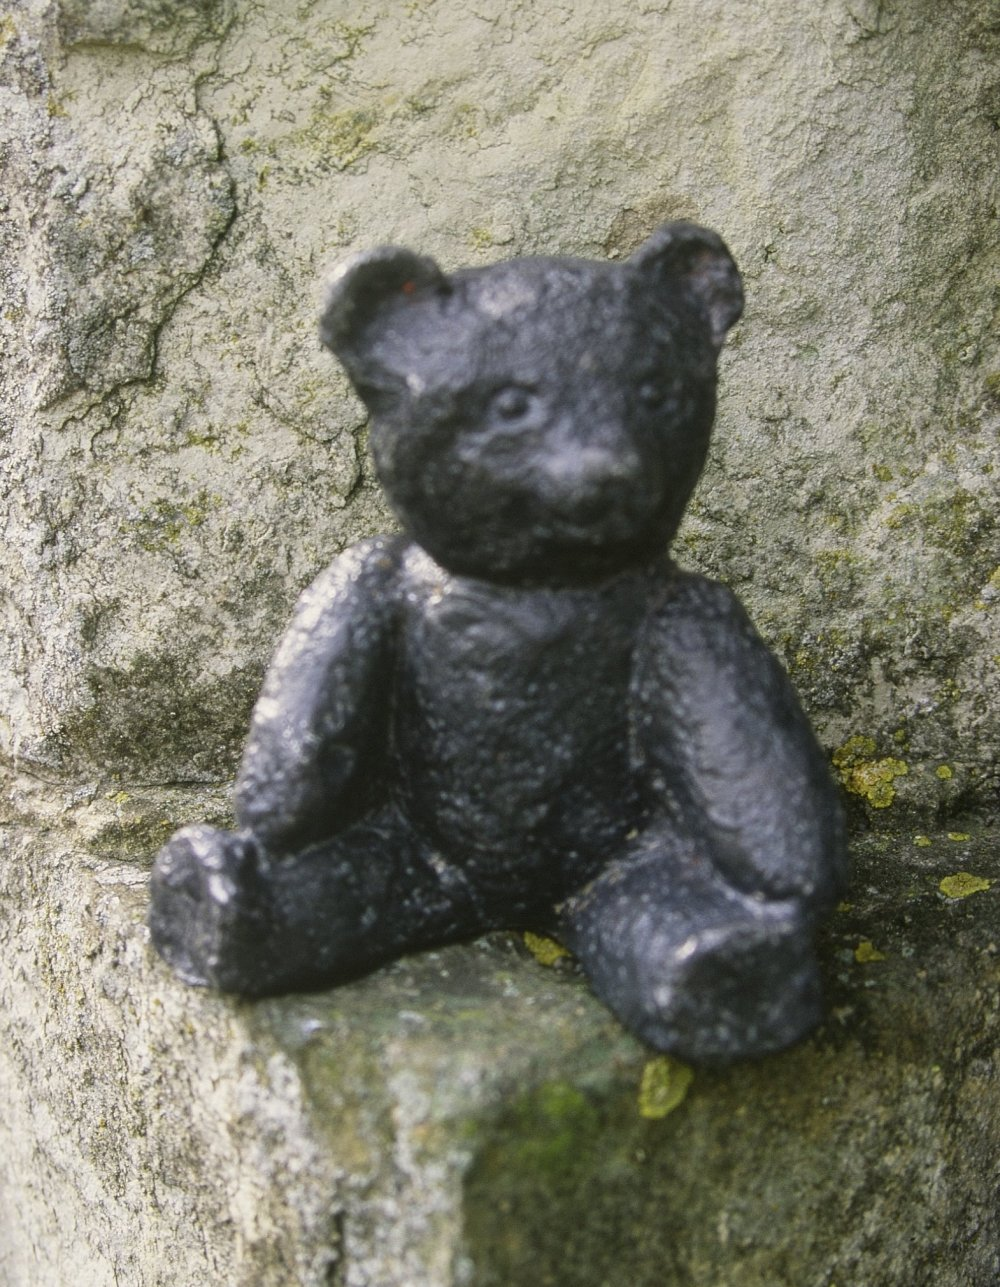 a Lead Teddy